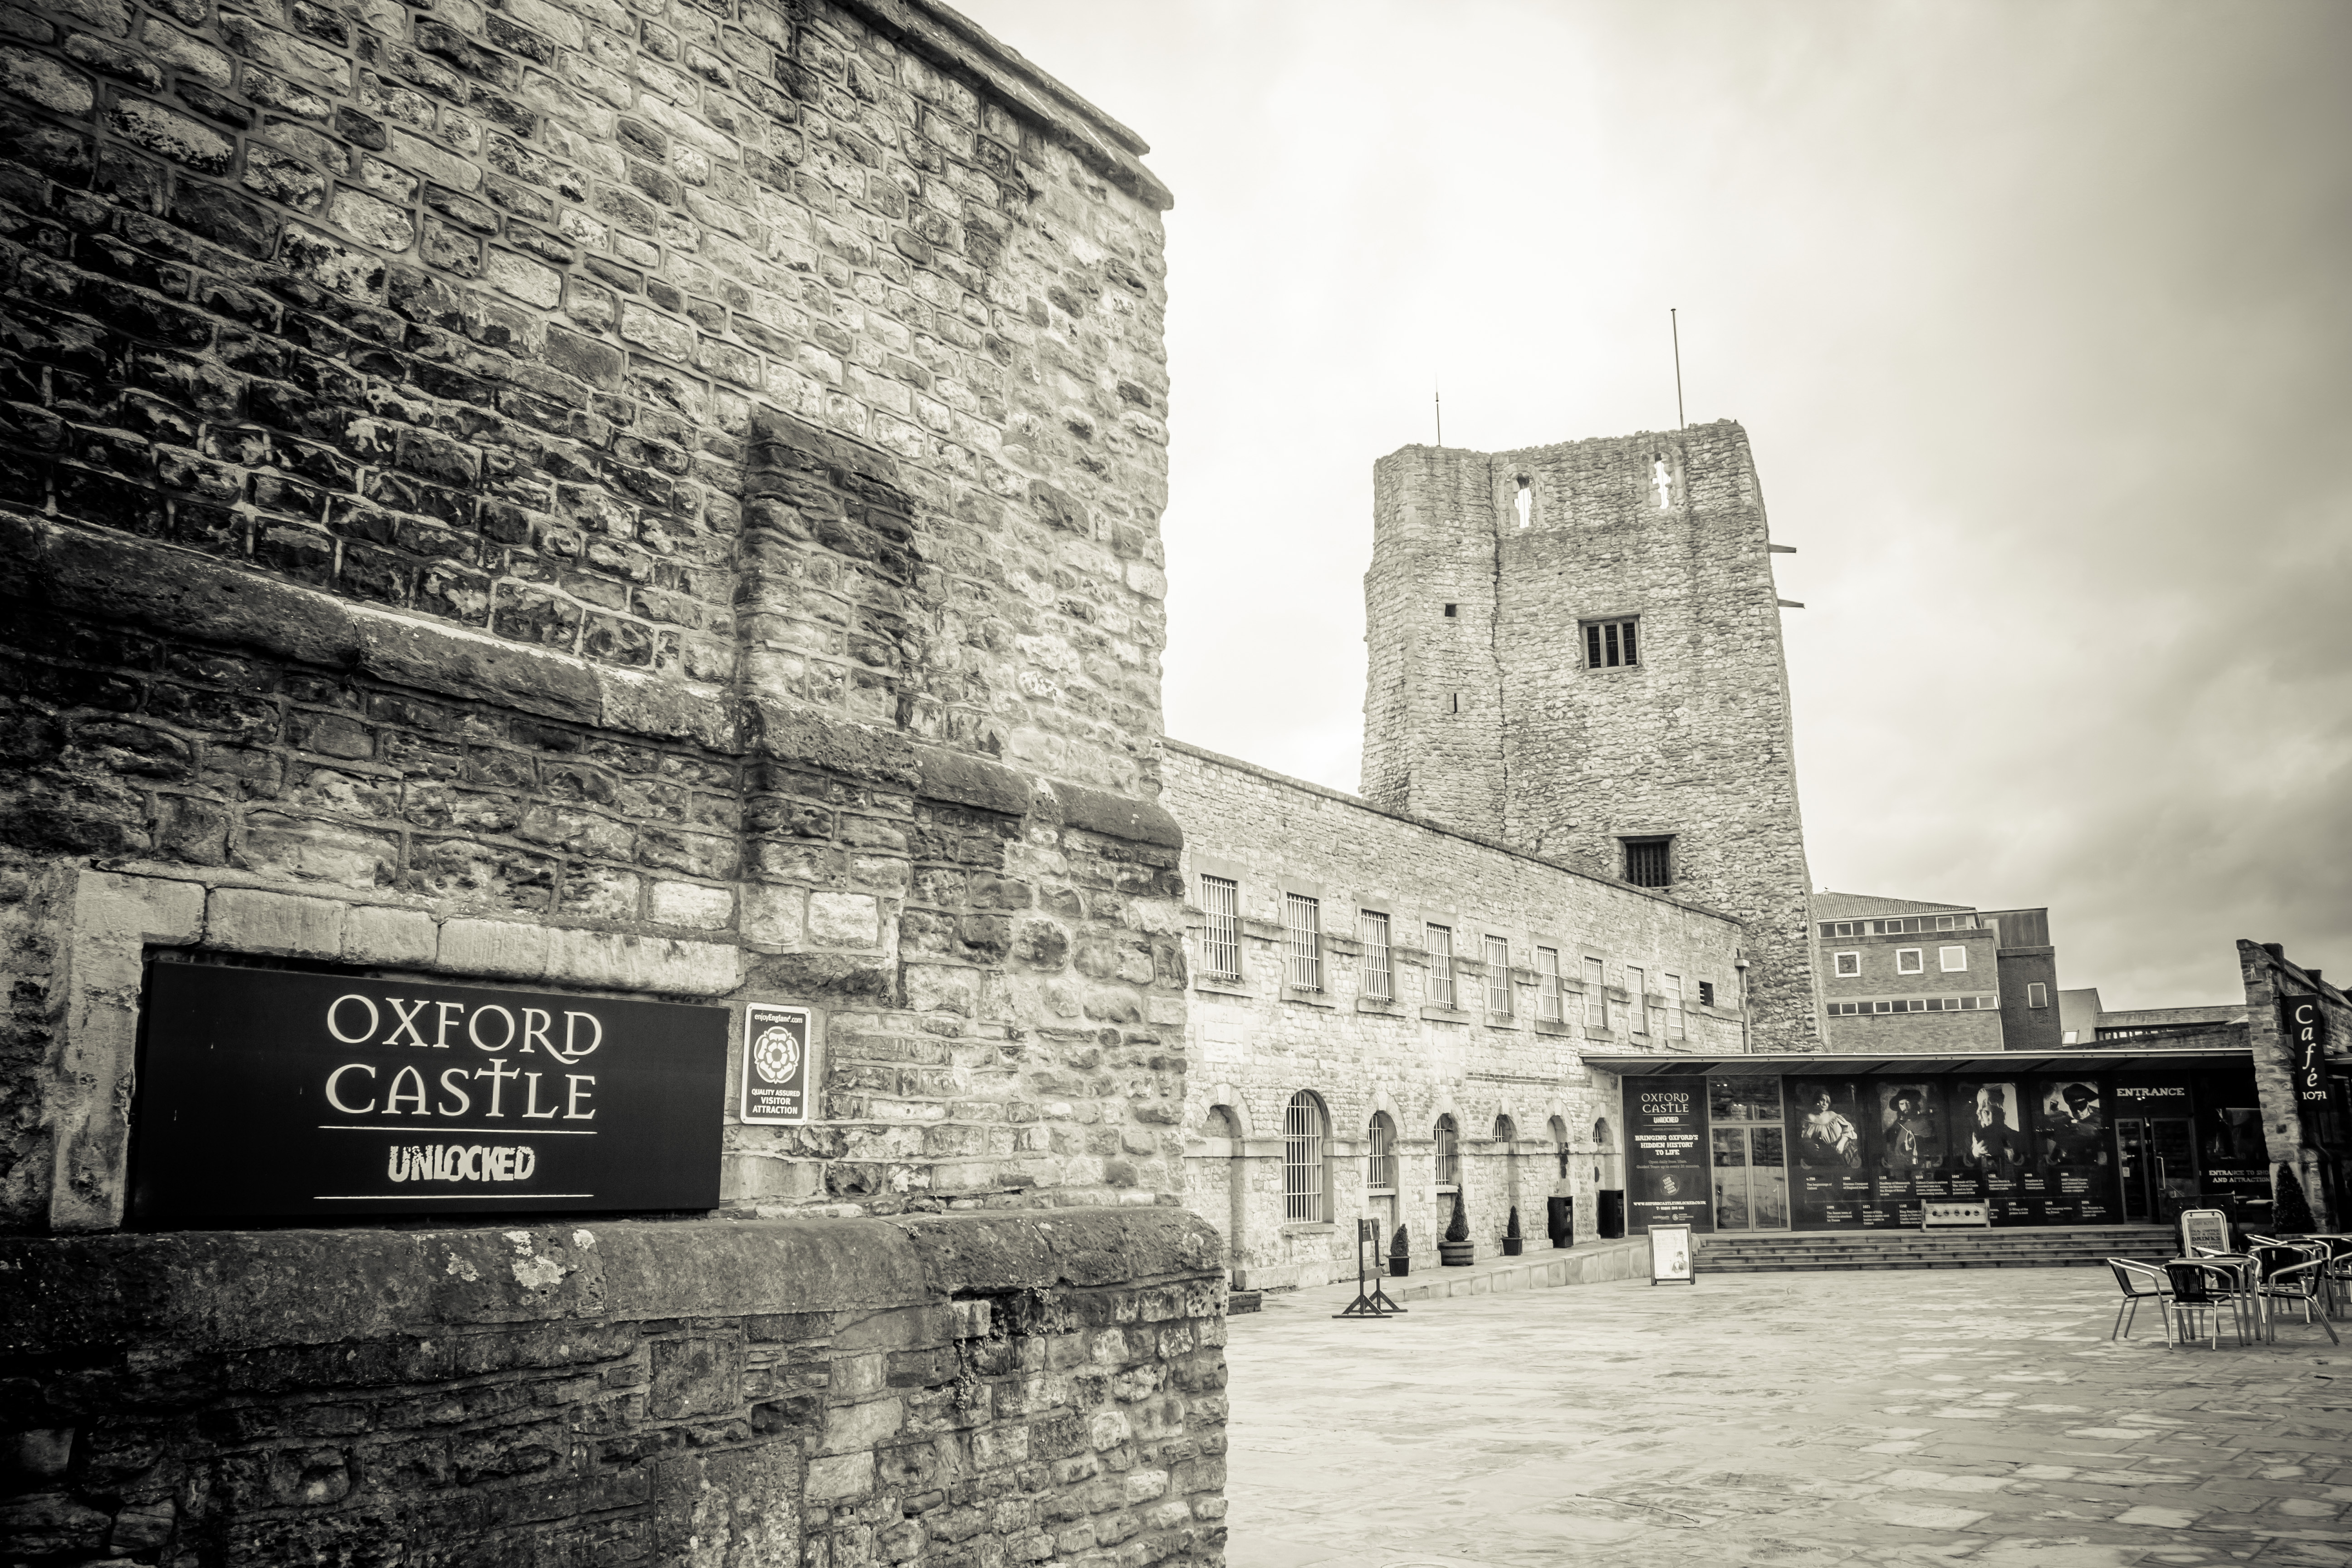 Discover the Oxford Castle pictured here in black and white.